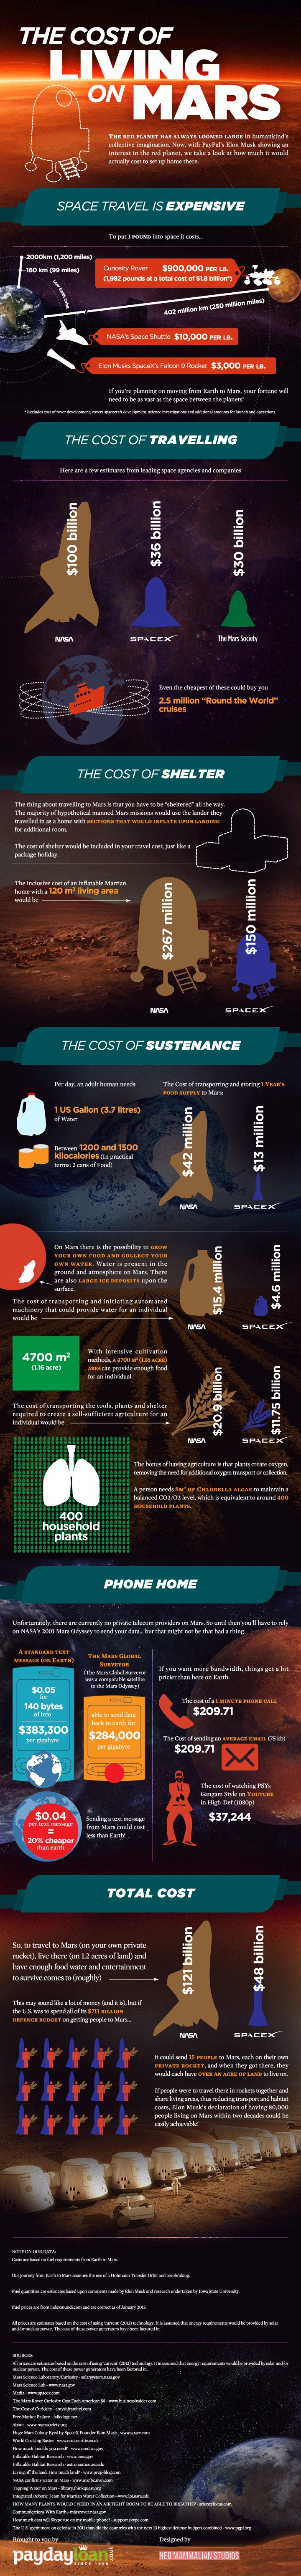 Infographic: The Cost of Living On Mars #infographic